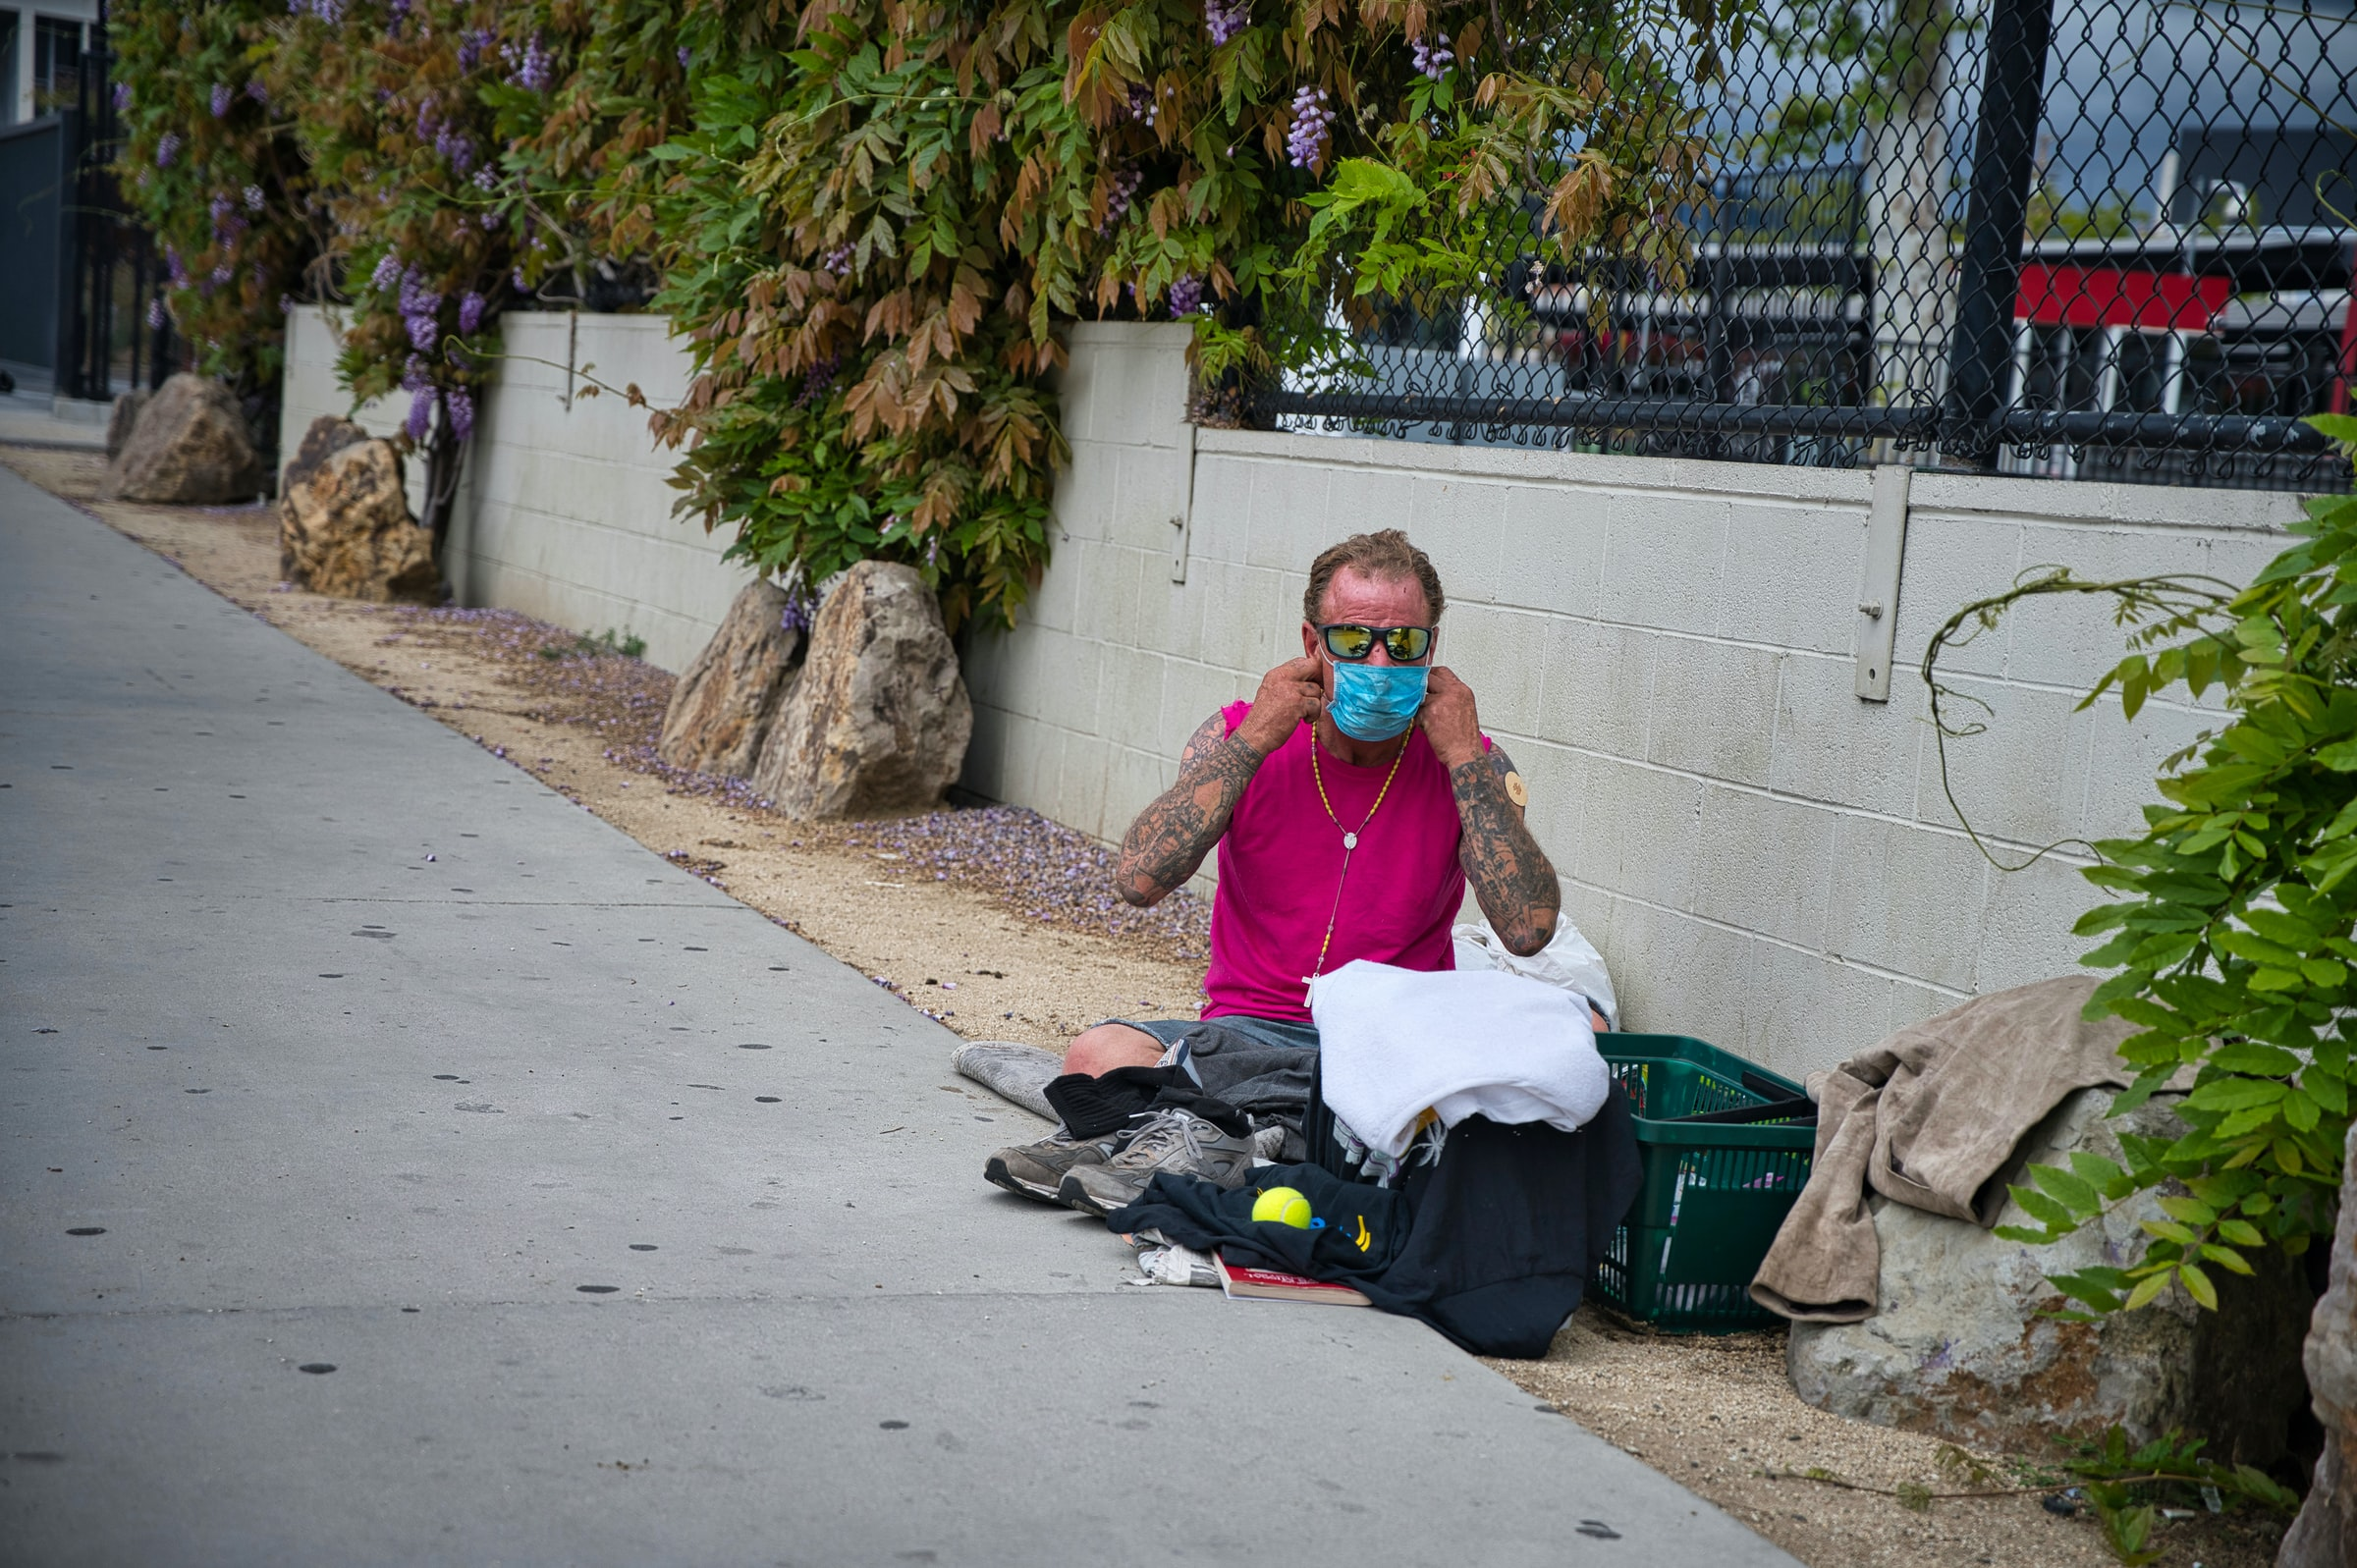 A man in a mask sits on the side of a road with a basket of belongings